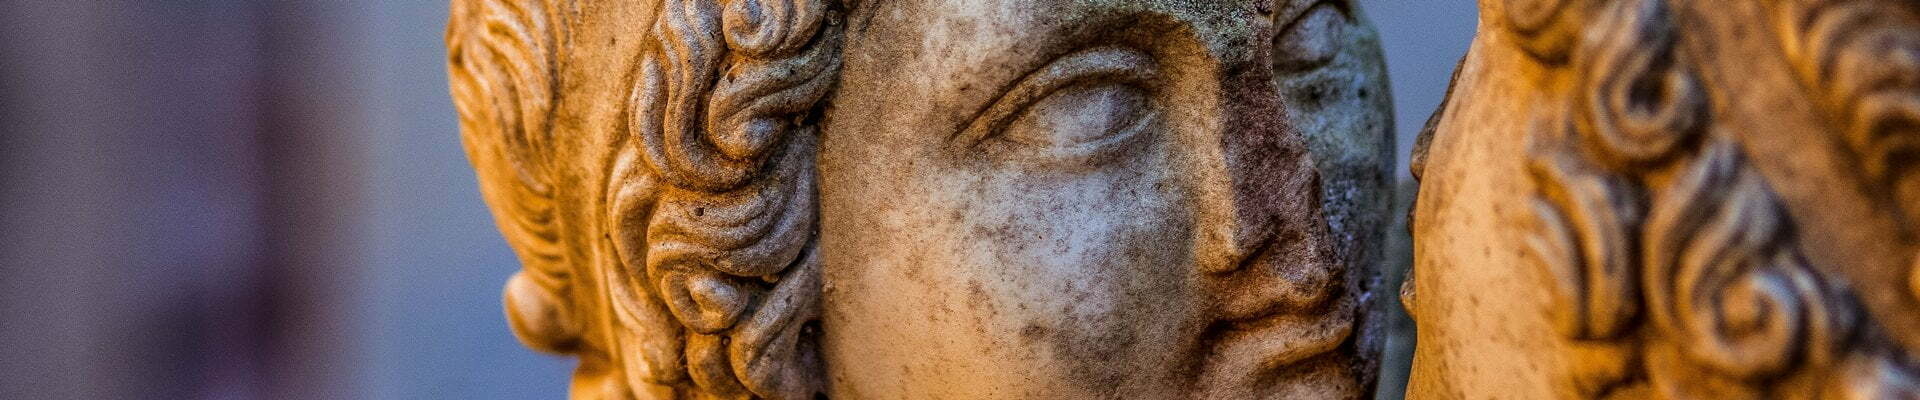 Sculptural detail from statues at Ostia Antica, near Rome.